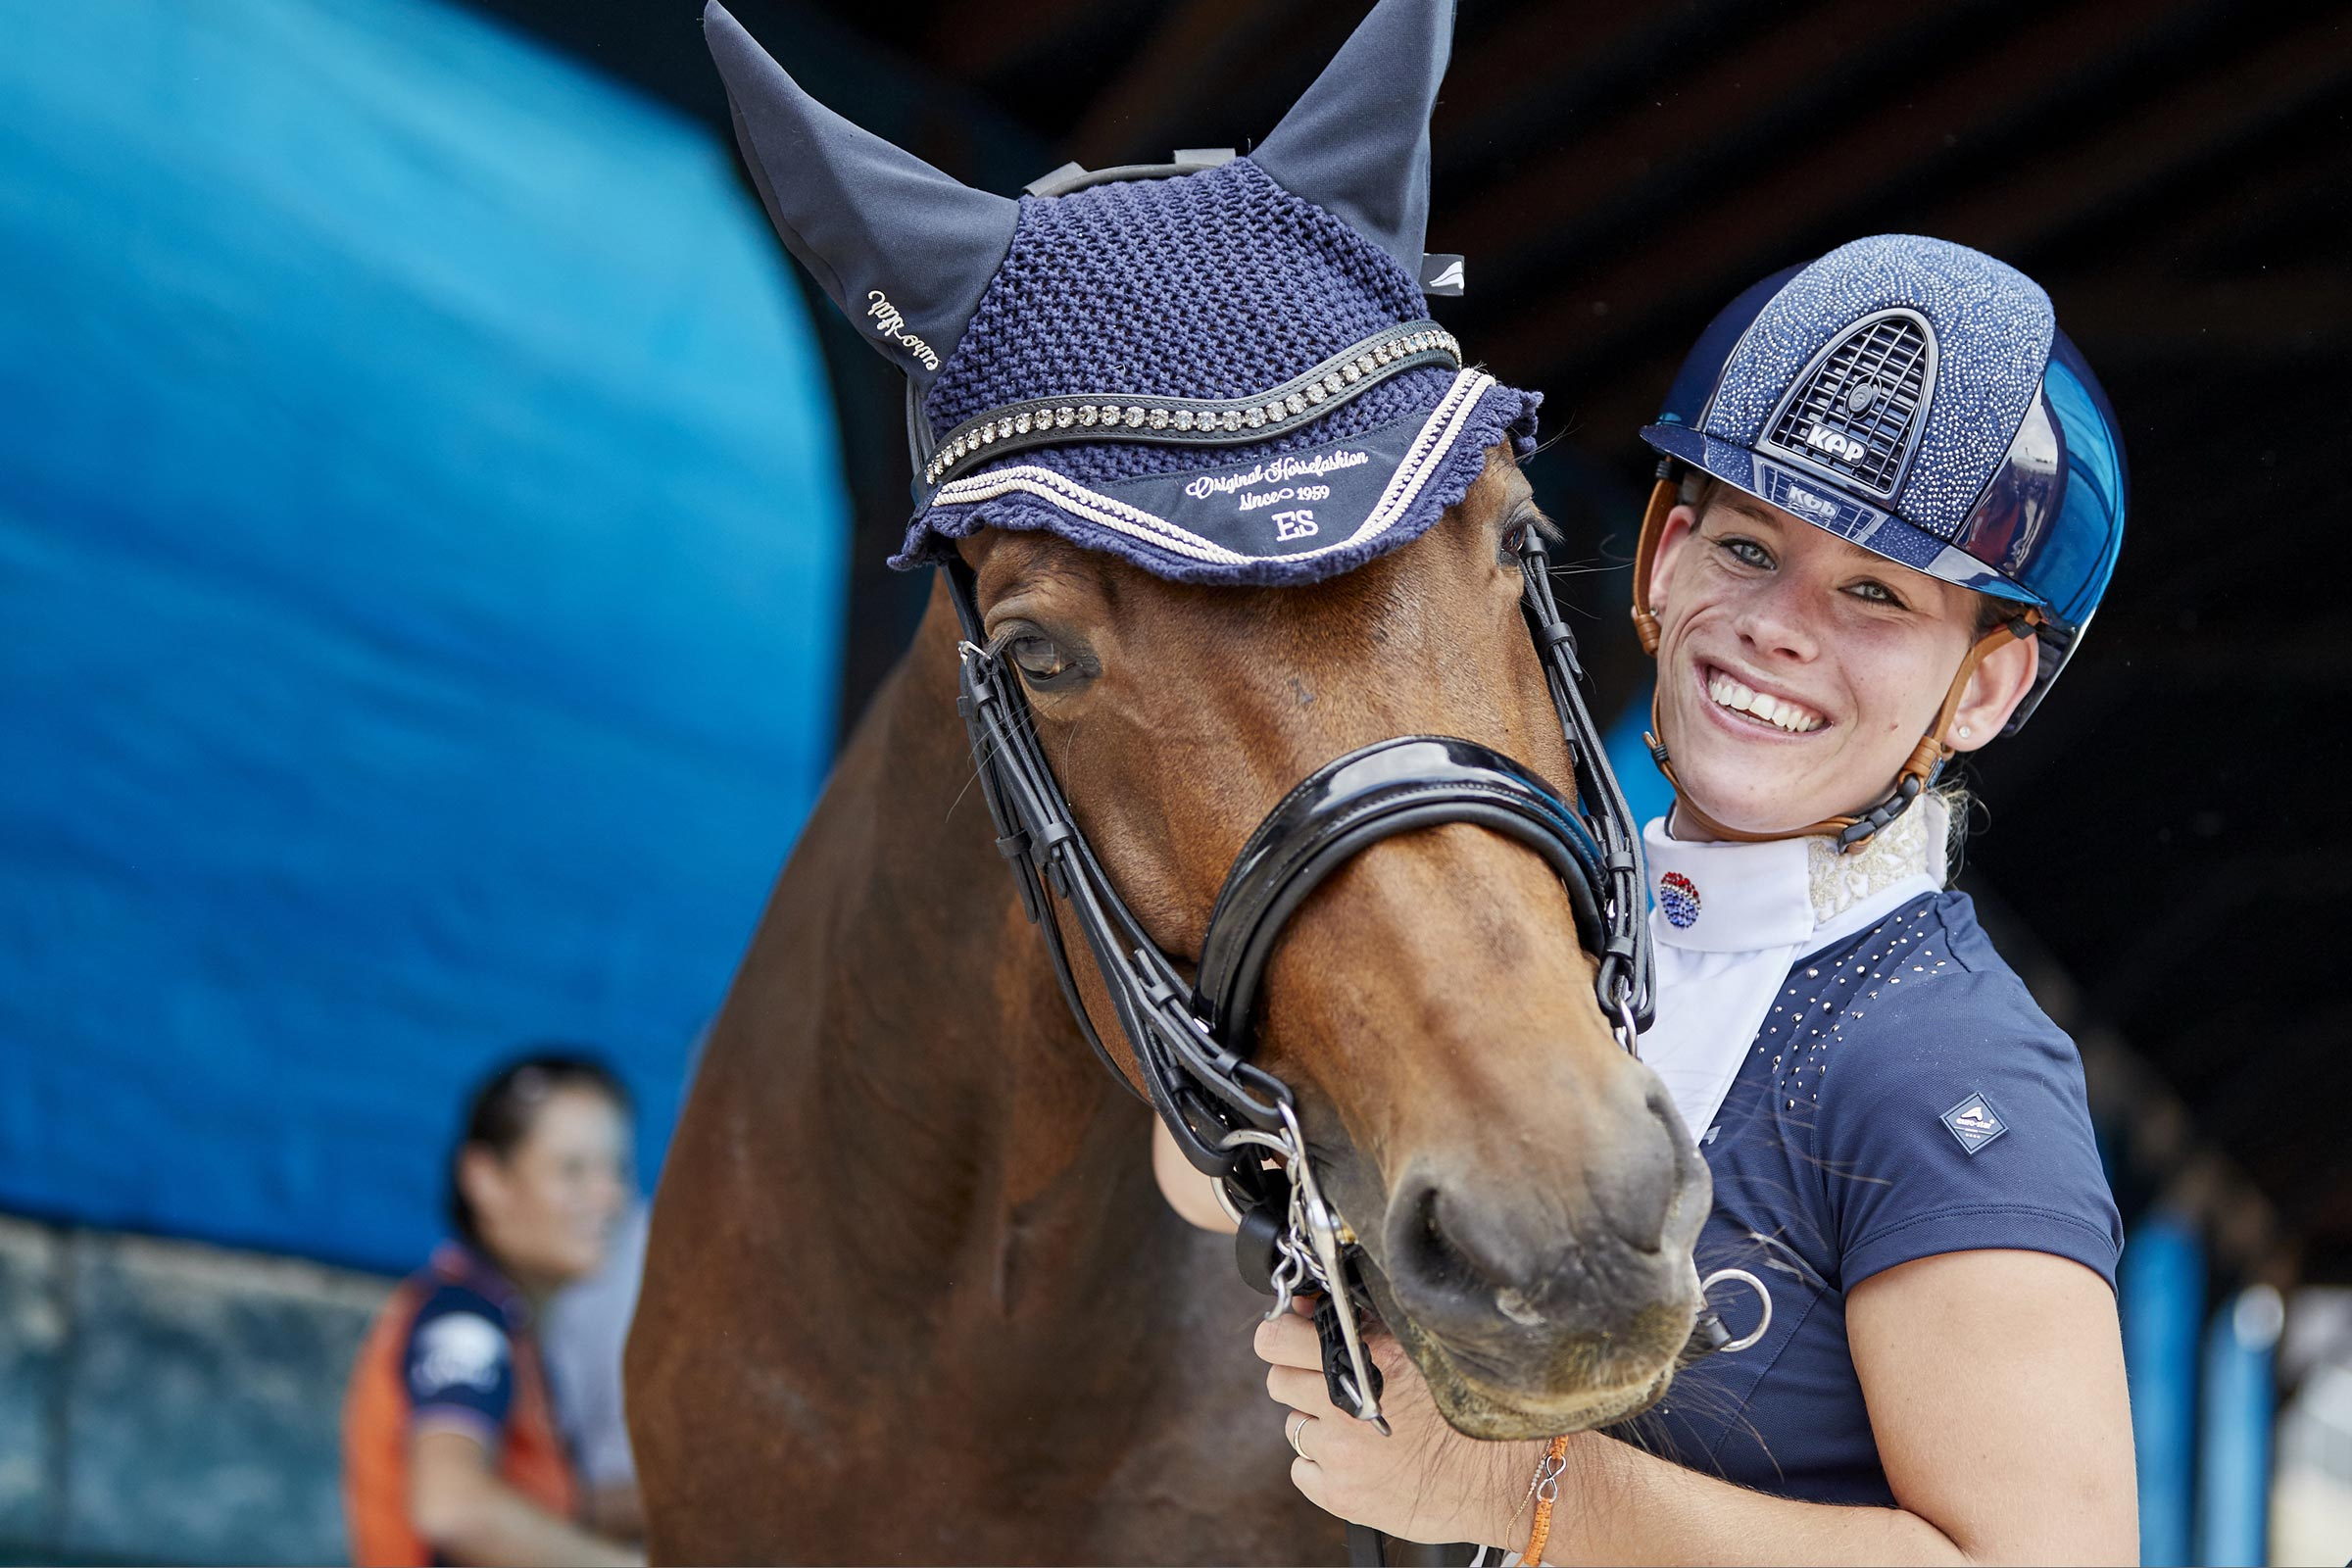 Rixt Van der Horst (NED) with her new horse, Findsley take delight in securing the gold medal in the Adequan© Para Dressage at the FEI World Equestrian Games™ Tryon today, successfully defending her World Championship individual title from Normandy 2014. (FEI / Liz Gregg)